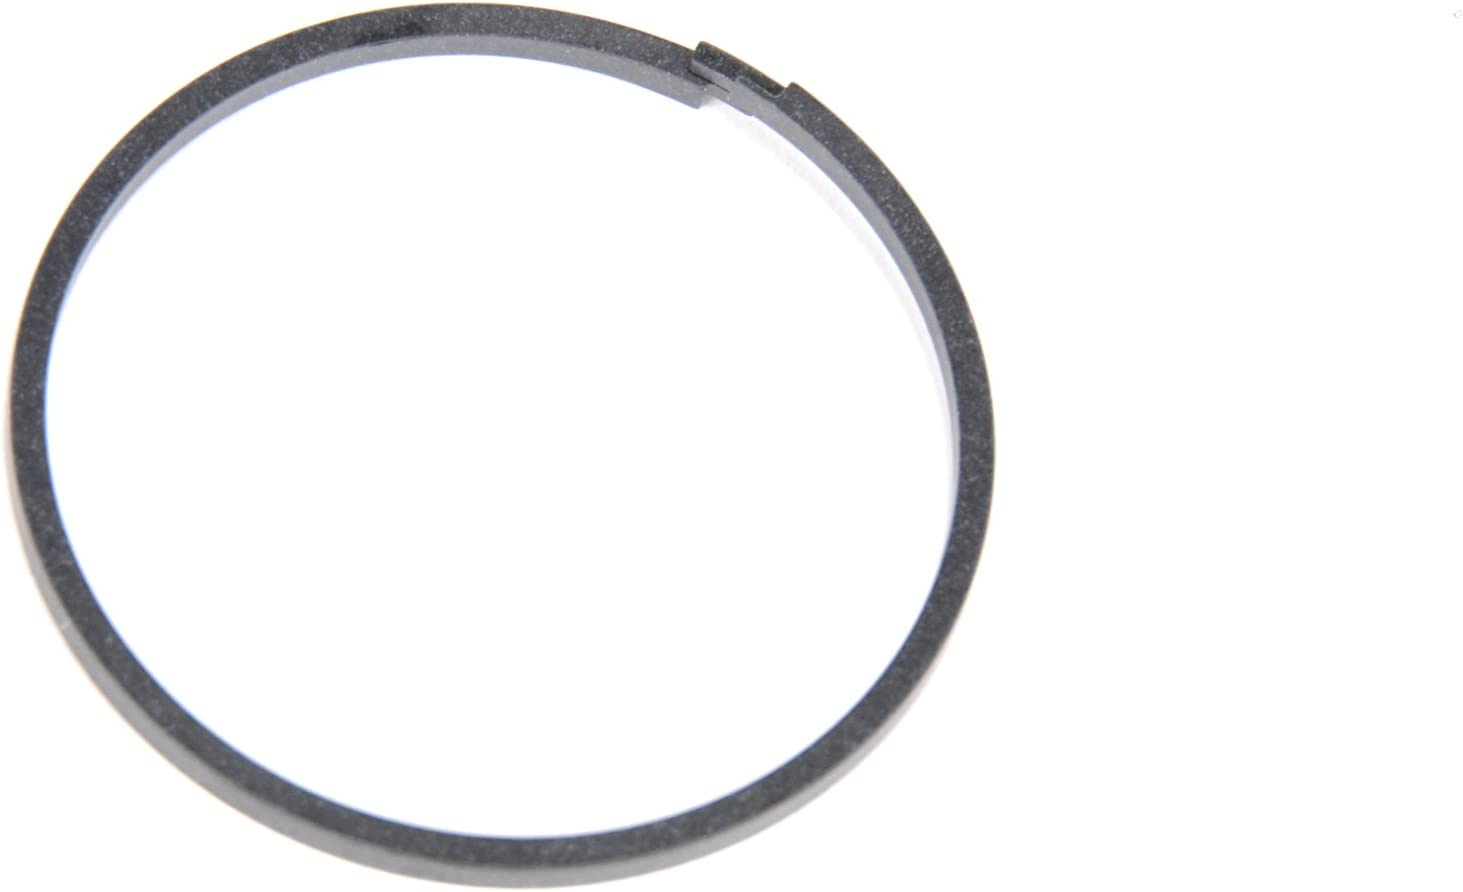 ACDelco 24276558 GM Original Equipment Automatic Transmission Direct Clutch Housing Fluid Seal